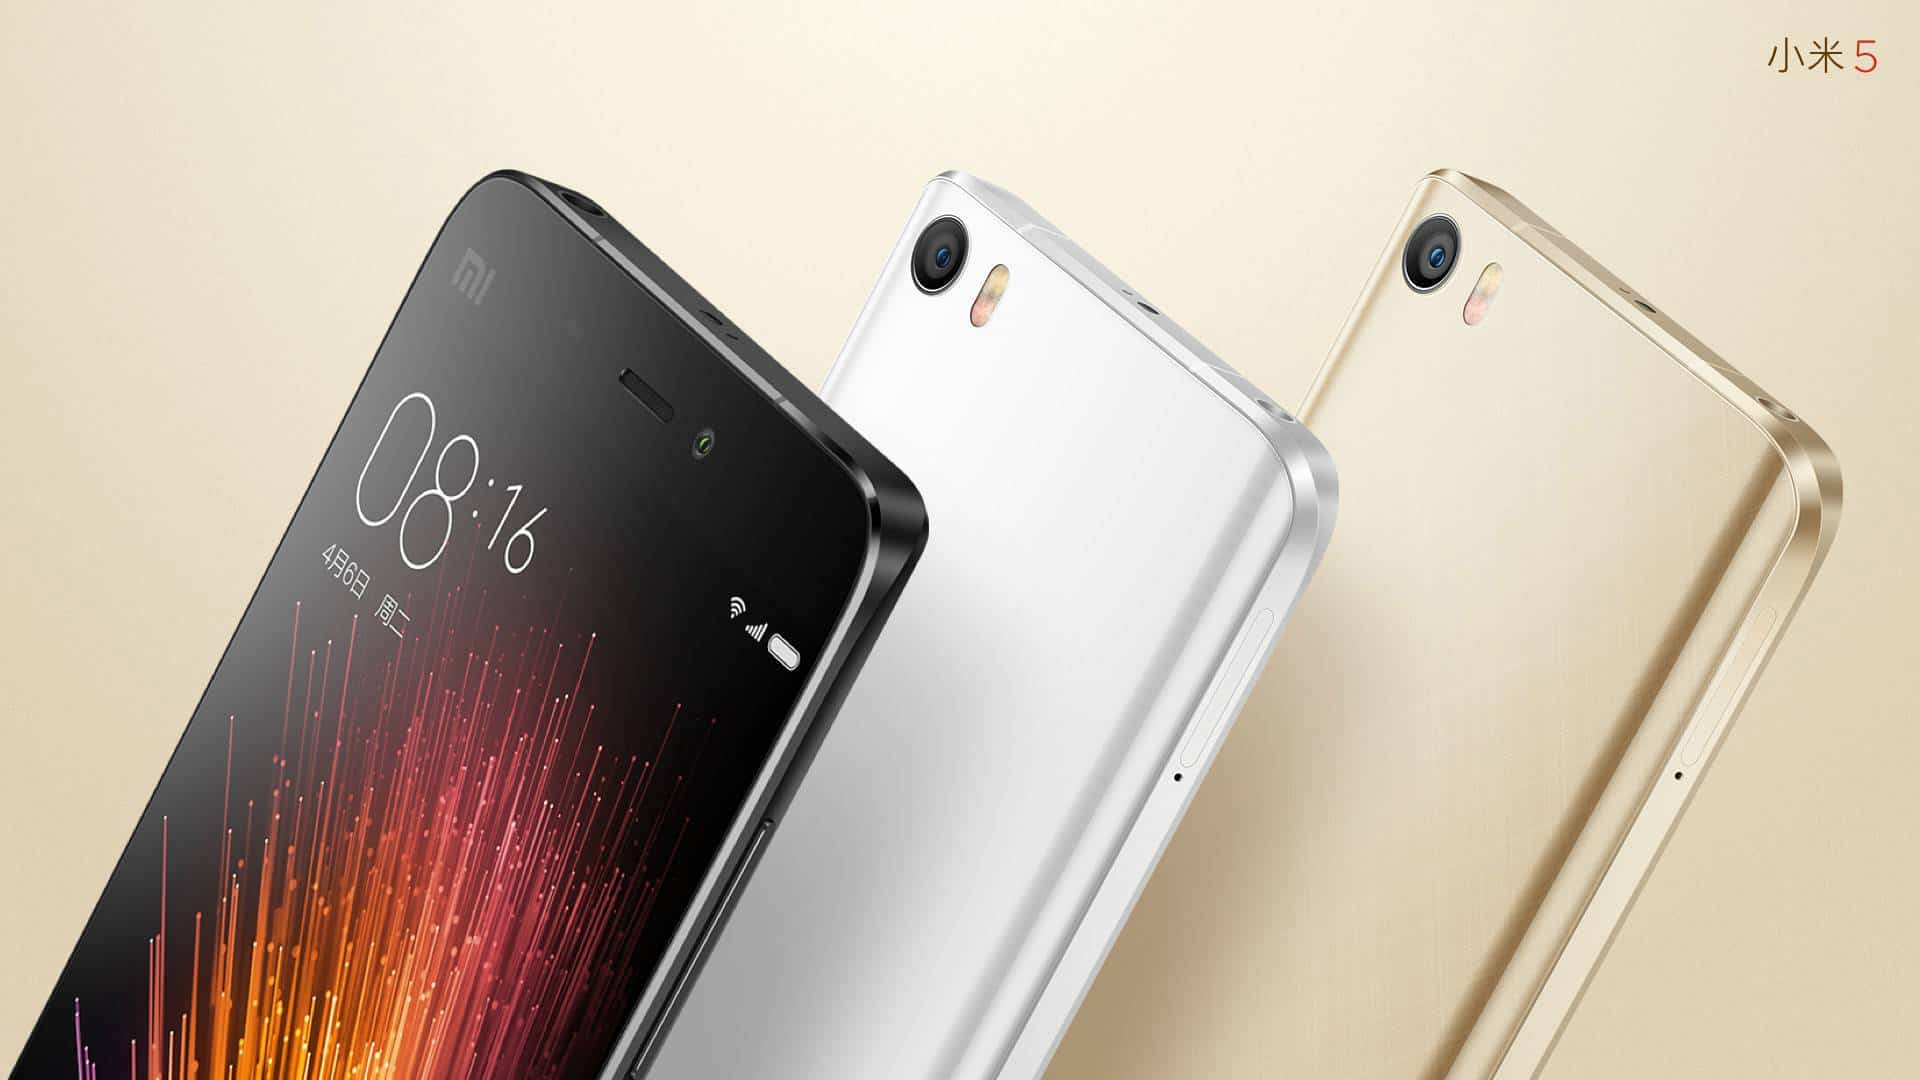 Xiaomi Mi 5 official image 1